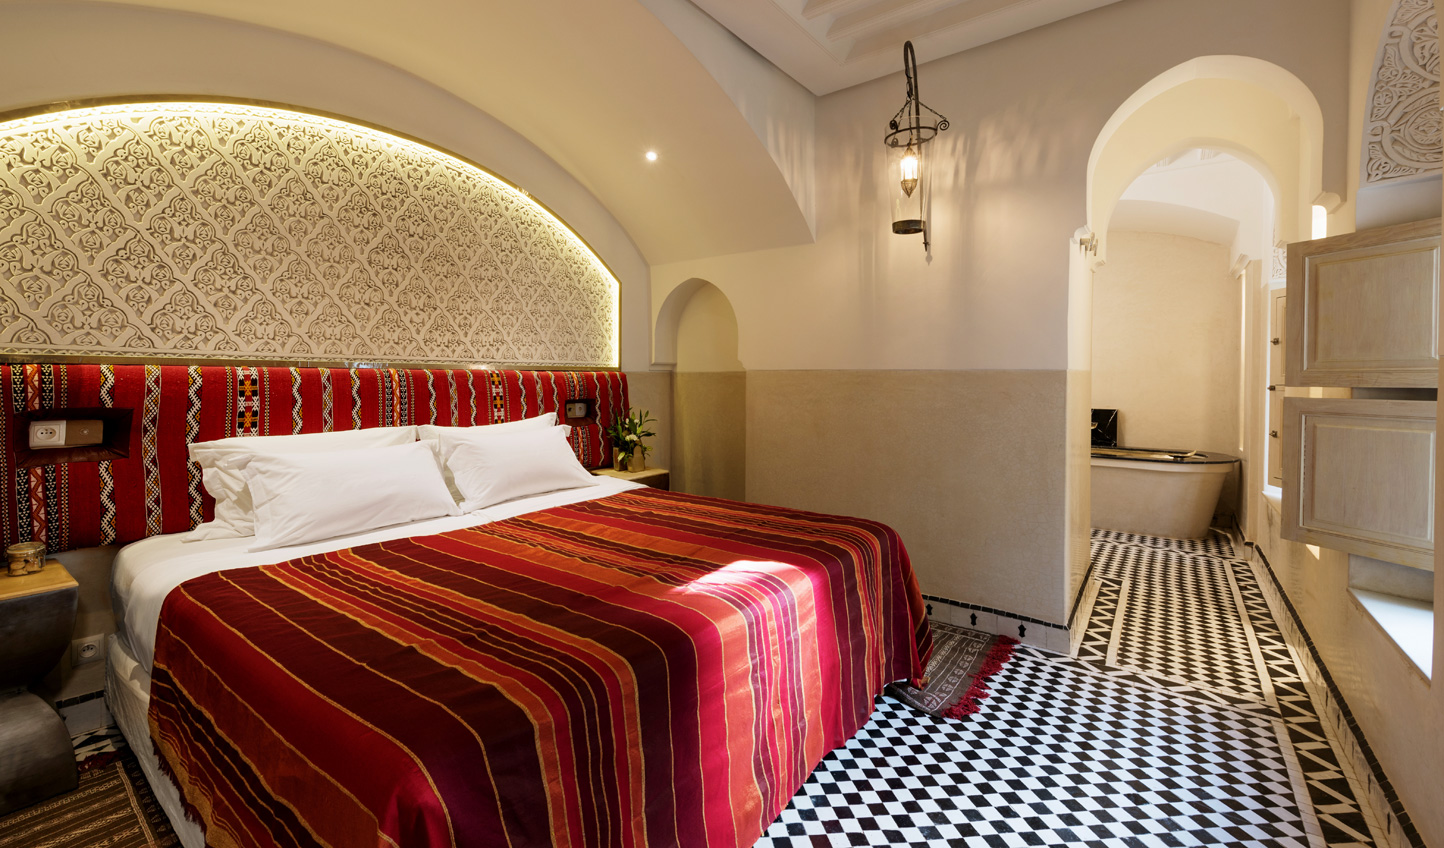 Fall back into welcoming beds at the end of a day exploring the city